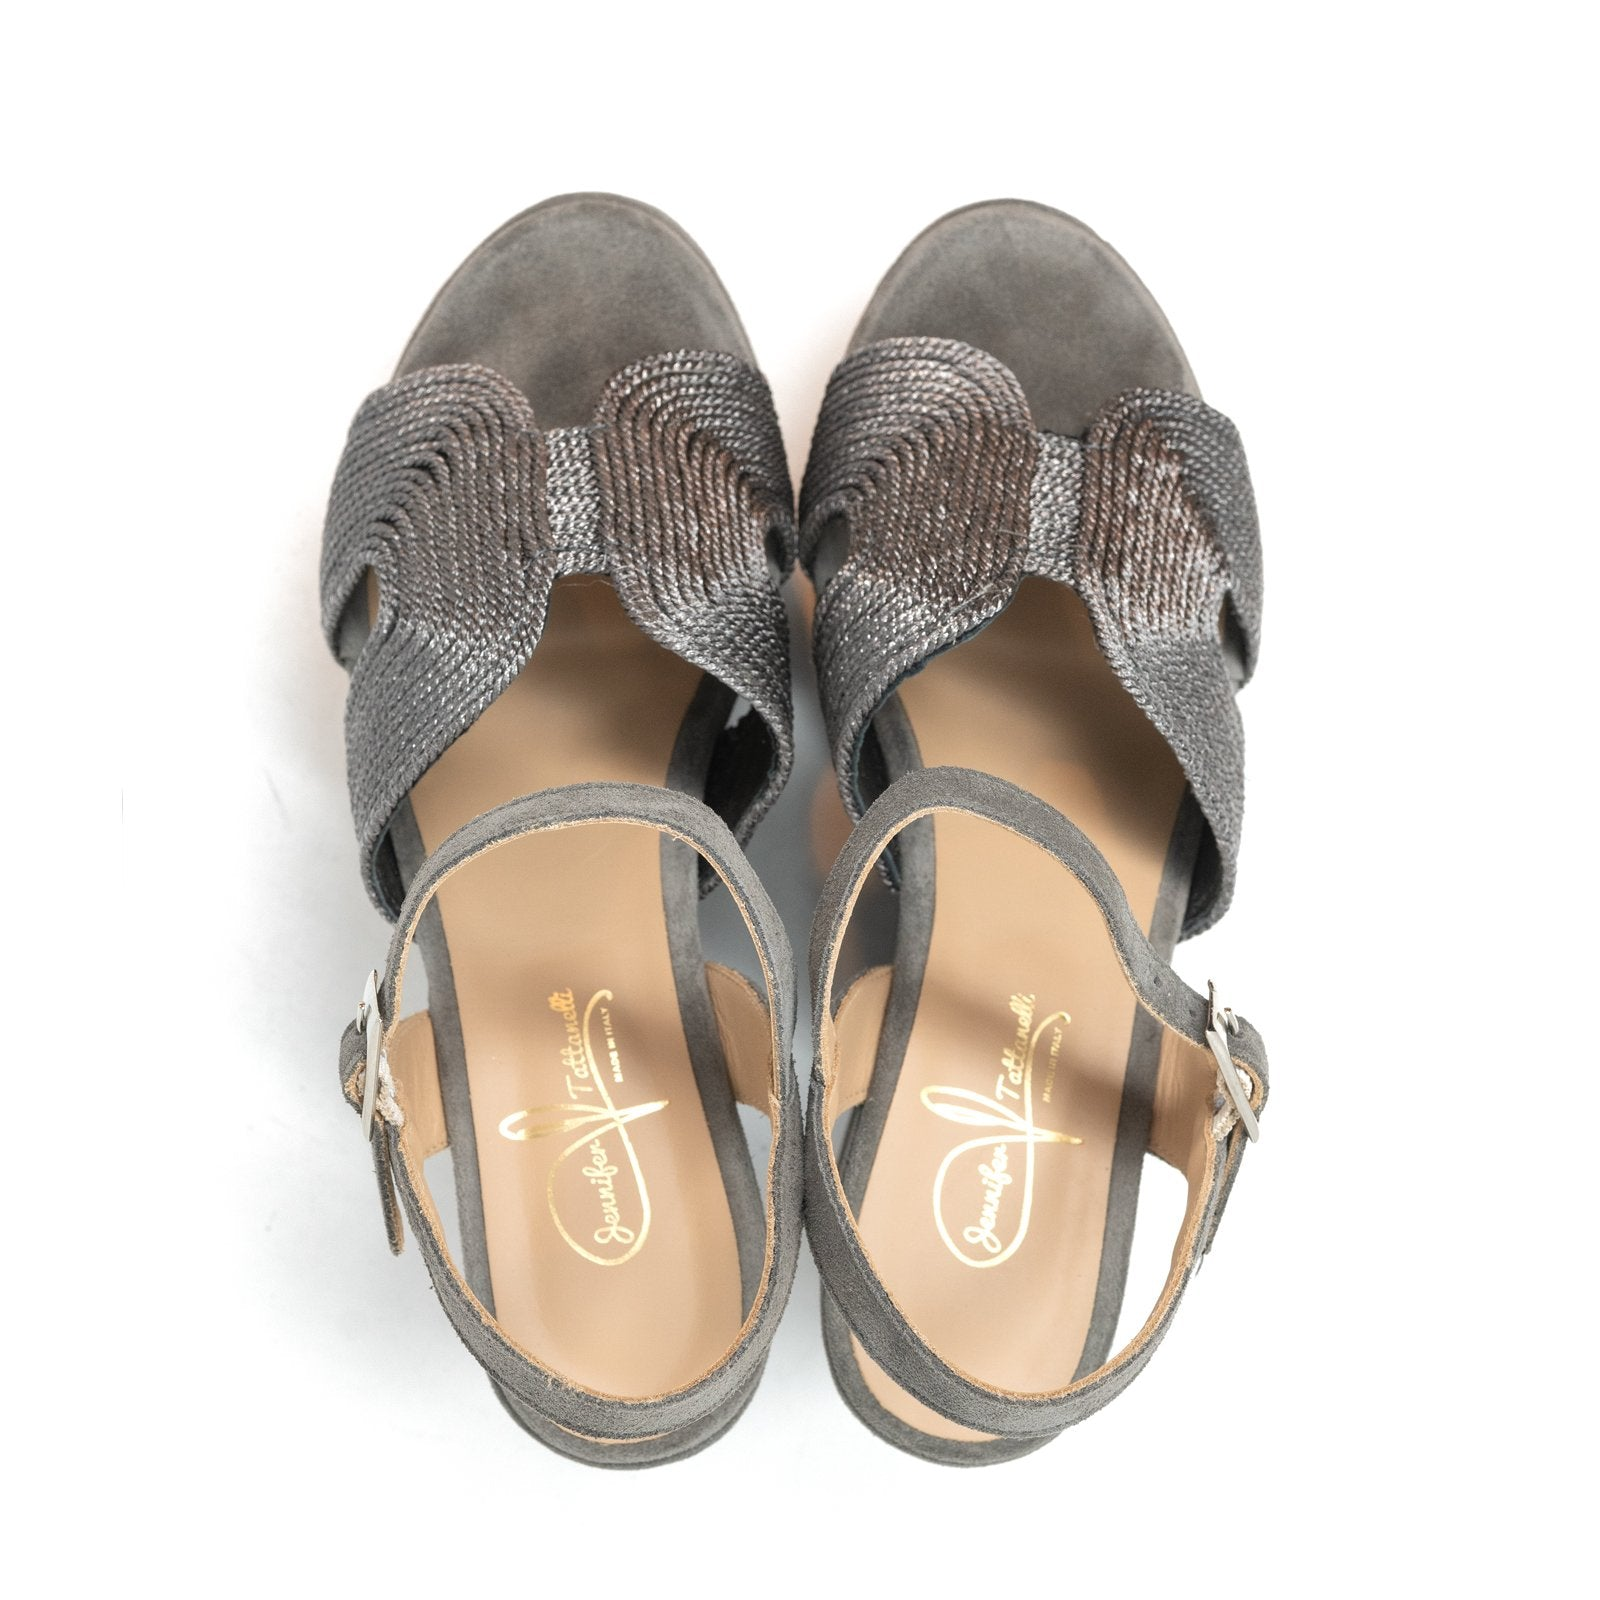 Women Suede Wedge Sandals in Grey - Jennifer Tattanelli